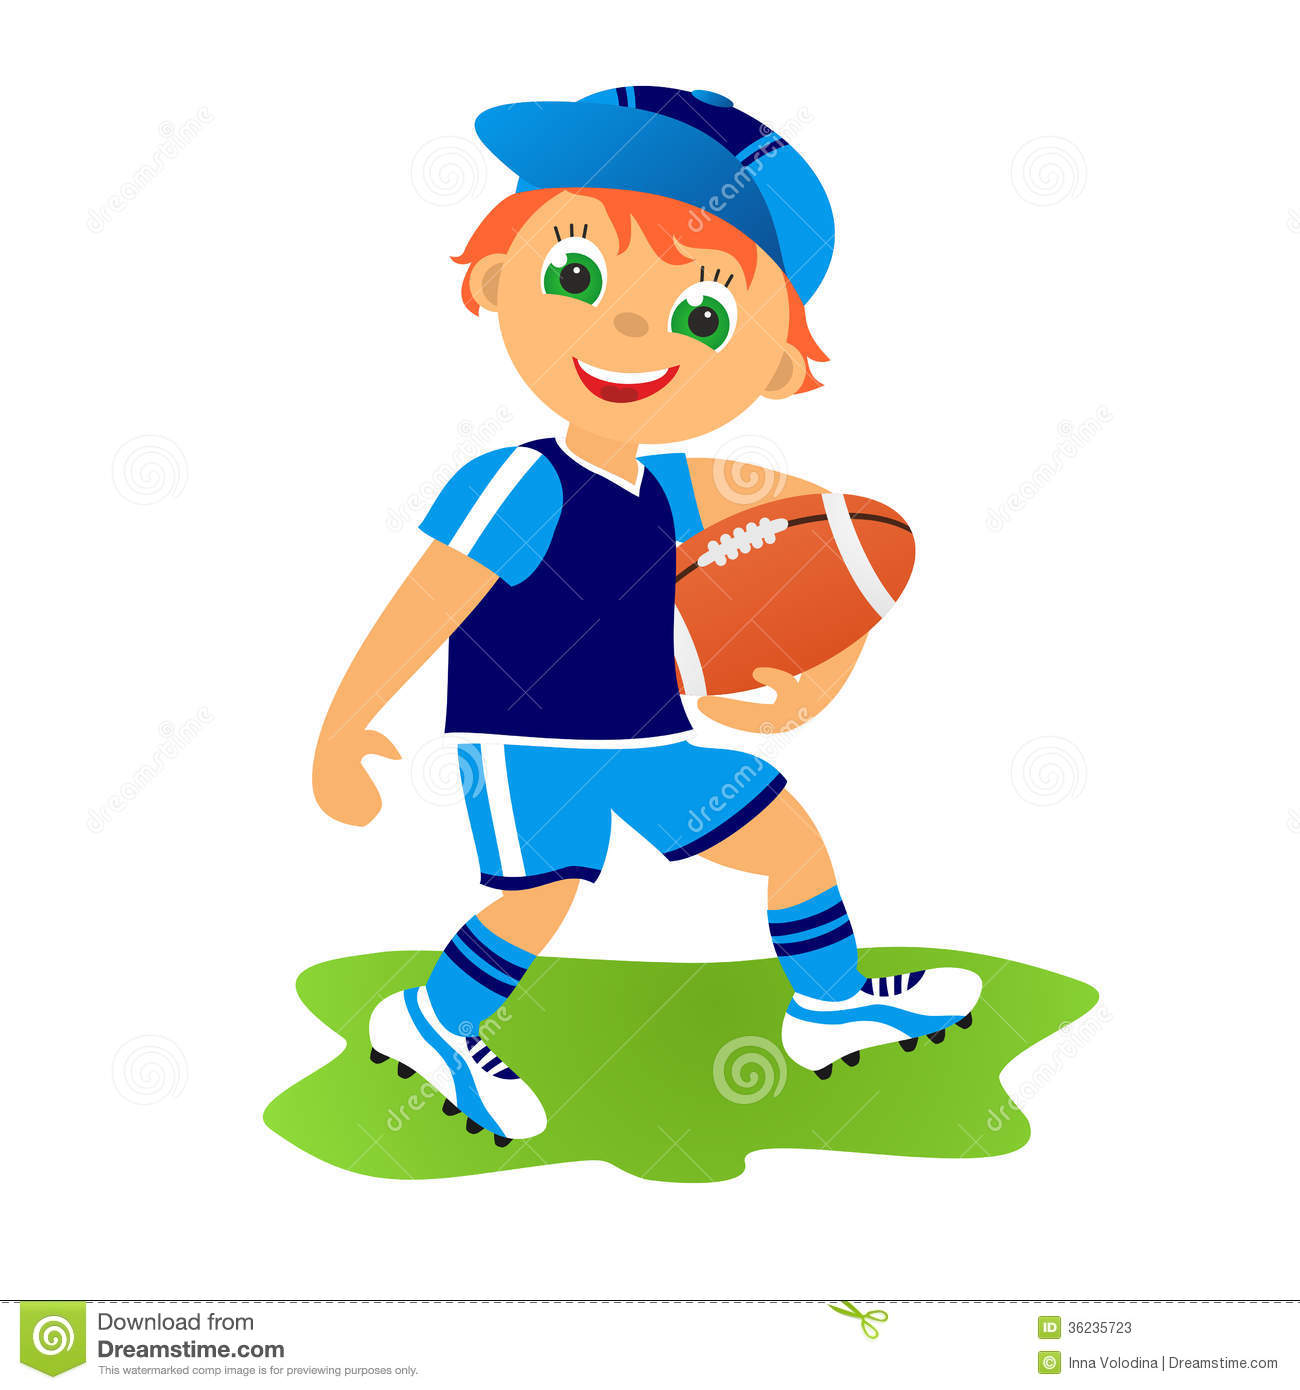 Rugby clipart 5 » Clipart Station.